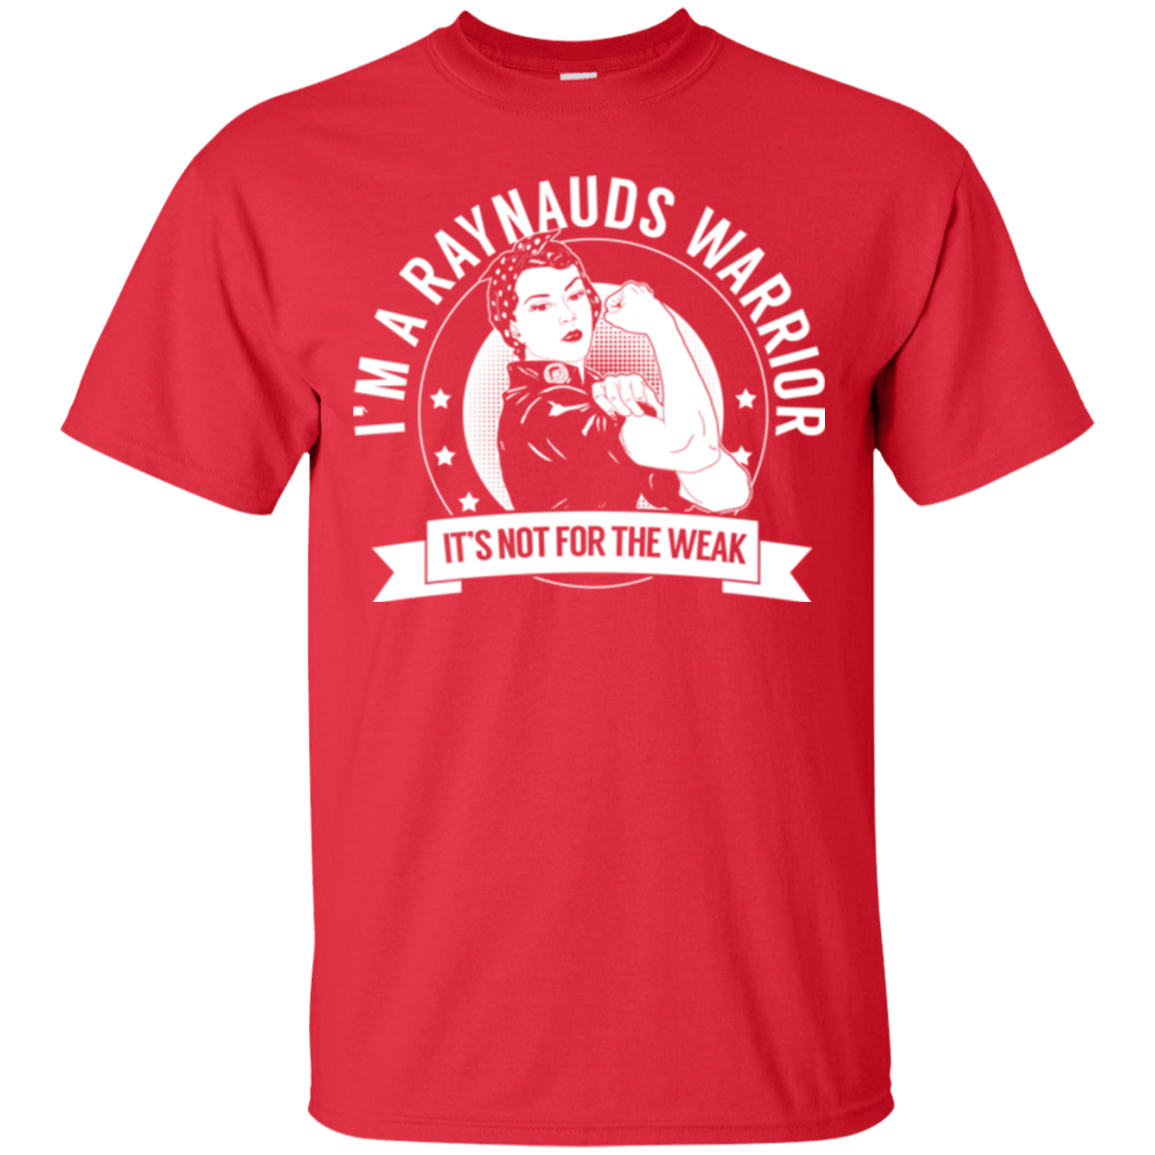 Raynaud's Disease - Raynauds Warrior Not For The Weak Cotton T-Shirt - The Unchargeables